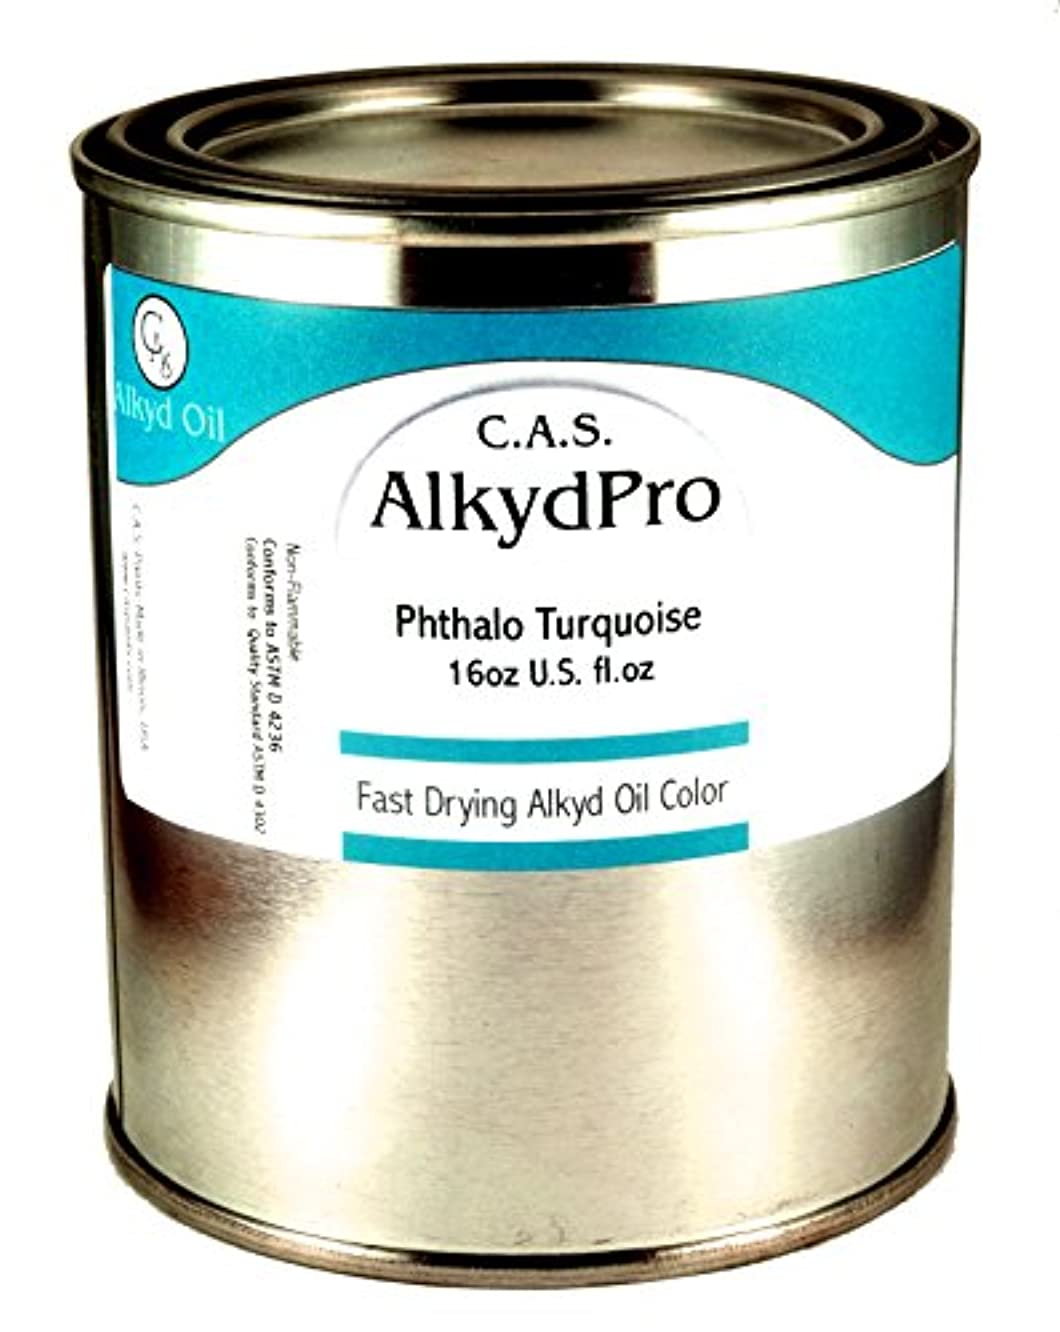 C.A.S. Paints AlkydPro Fast-Drying Oil Color Paint Can, 16-Ounce, Phthalo Turquoise